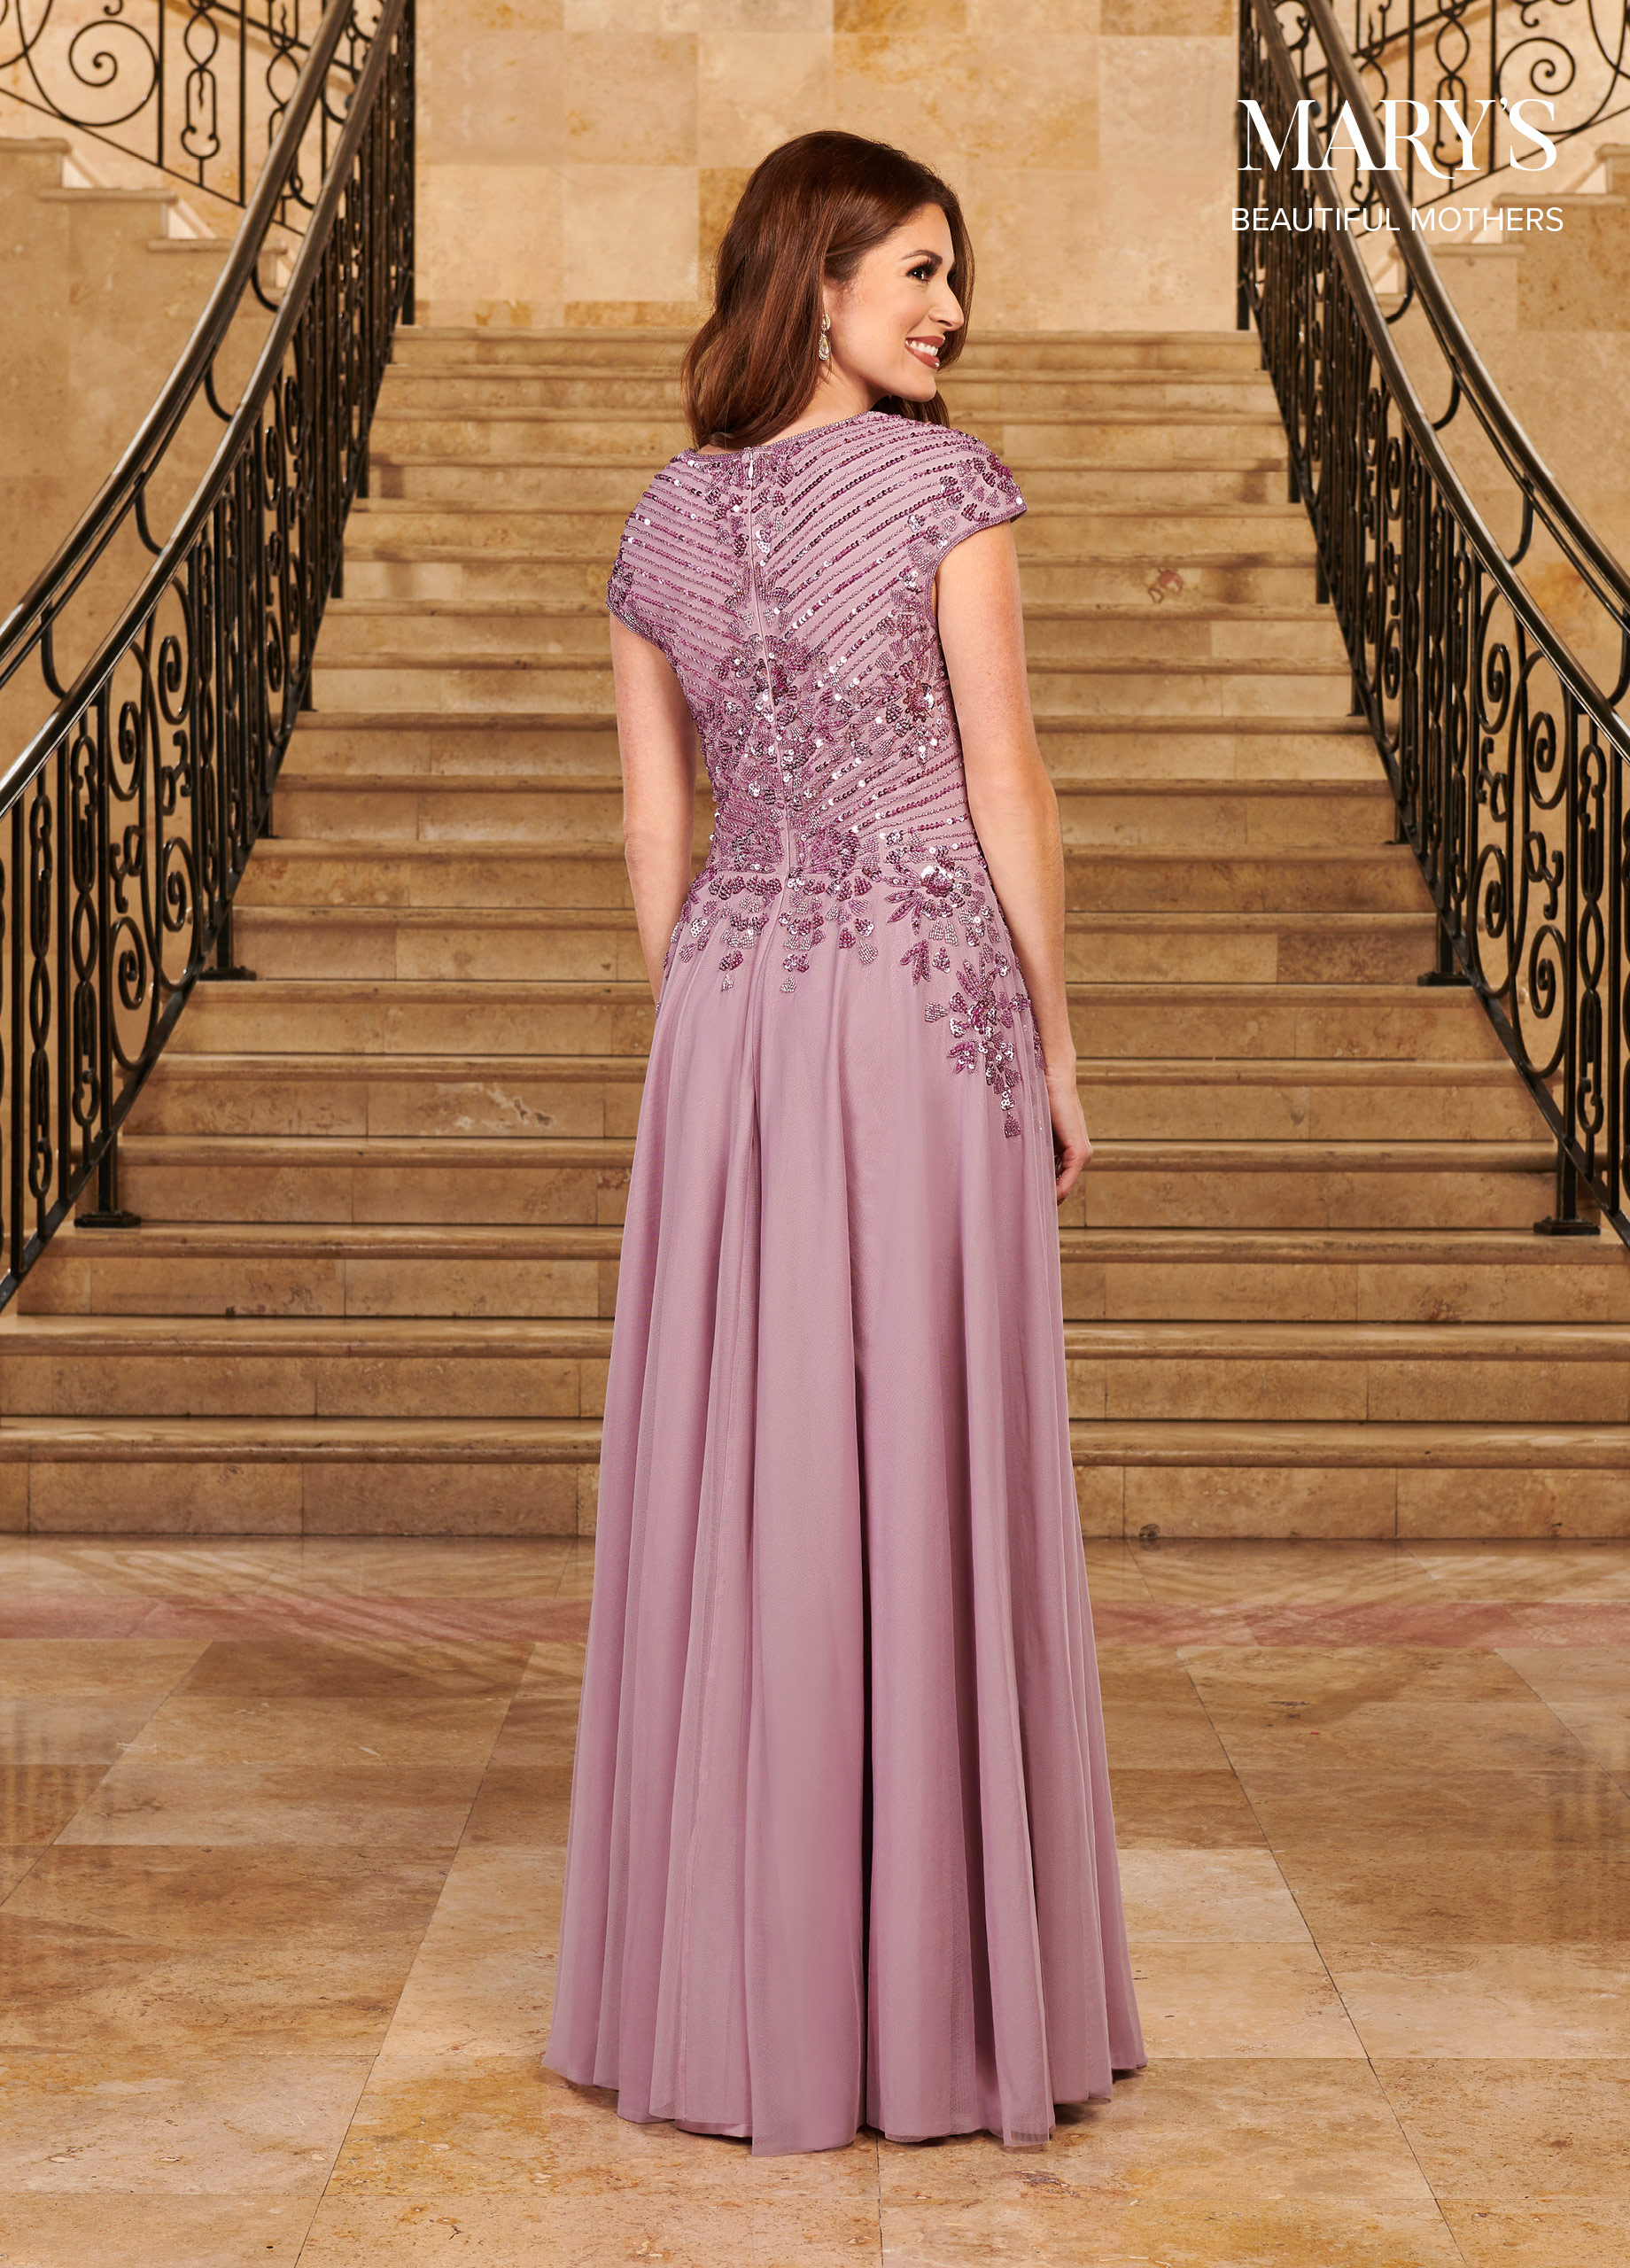 Mother Of The Bride Dresses | Beautiful Mothers | Style - MB8096